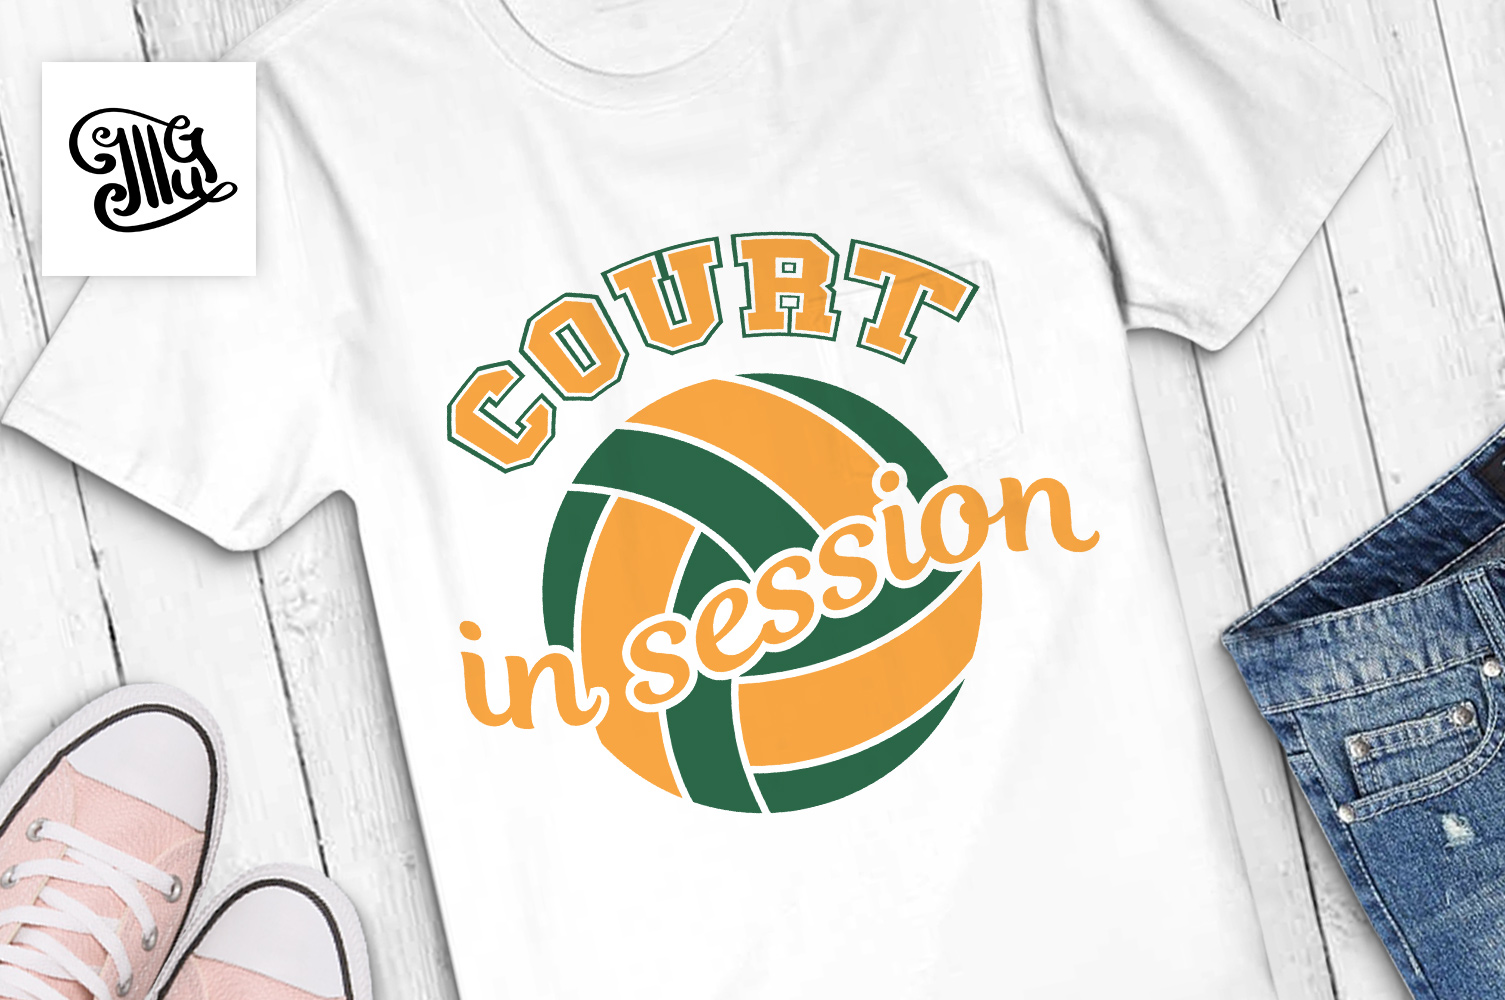 Court in session example image 1